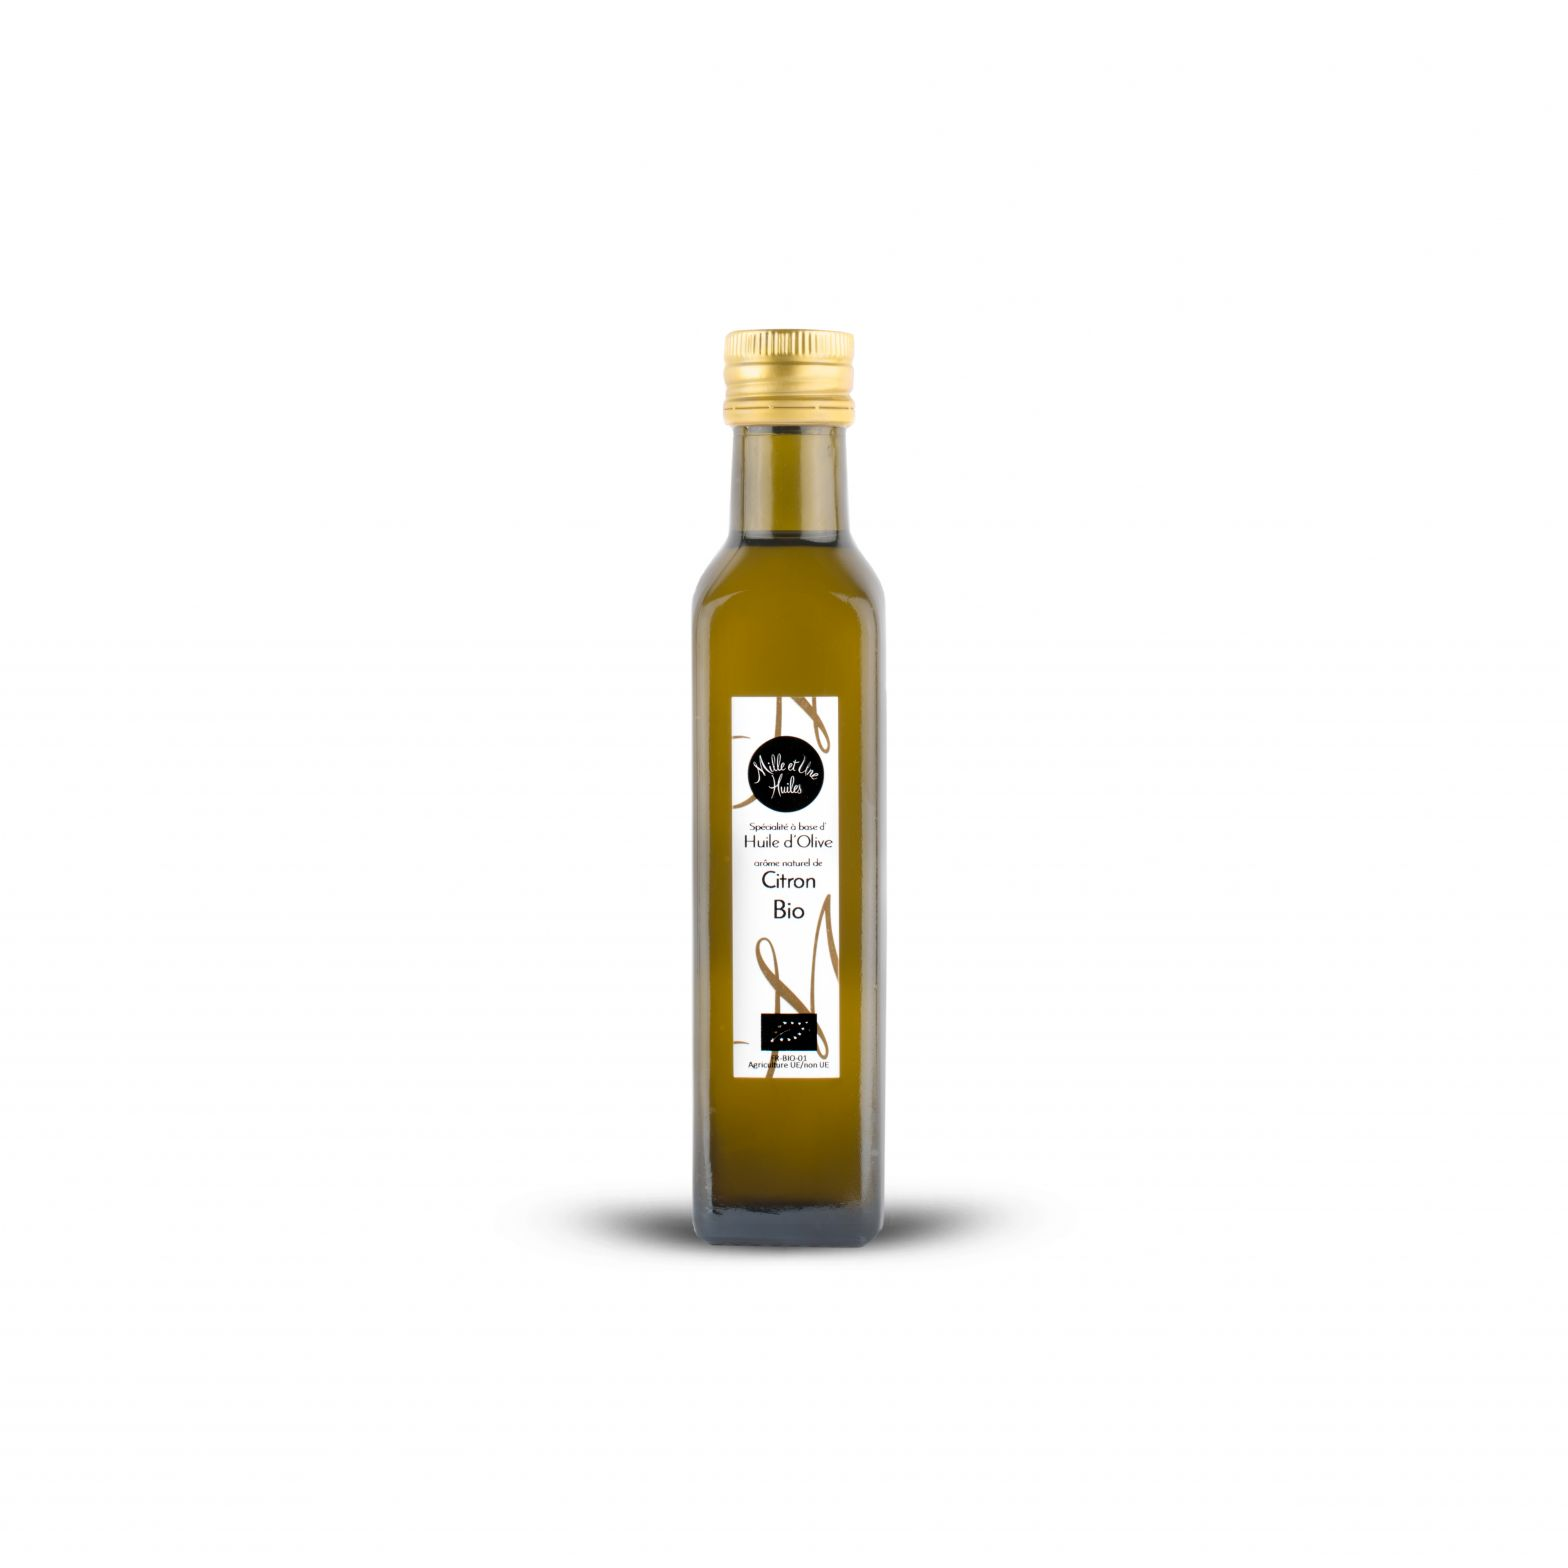 Lemon-flavoured olive oil dressing, organic